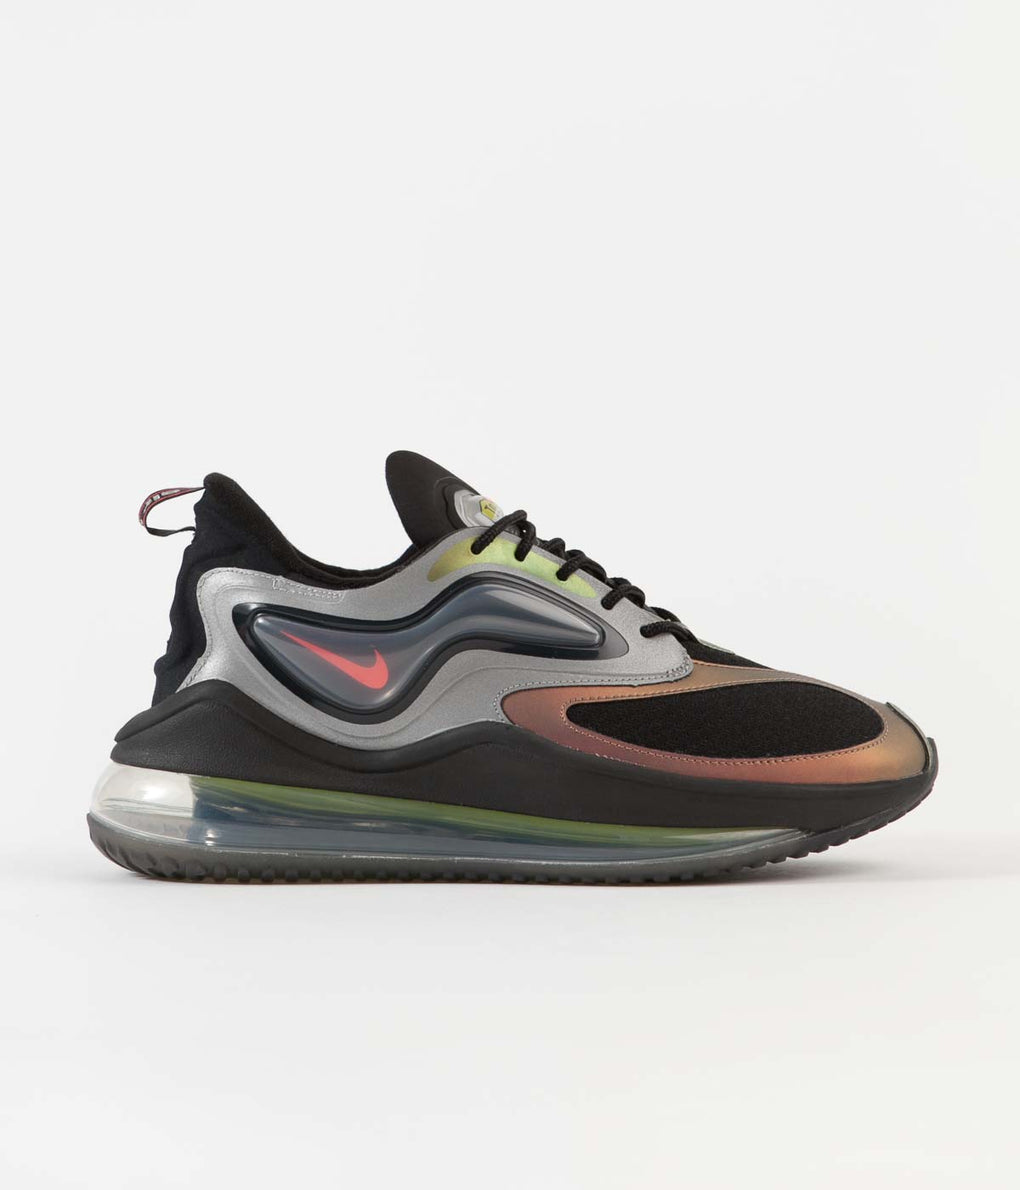 nike-air-max-zephyr-eoi-shoes-metallic-silver-bright-crimson-black-1_d294c67a-8050-4252-af82-9313270ad5ba_1020x1190_crop_center.progressive.jpg?v=1619107434